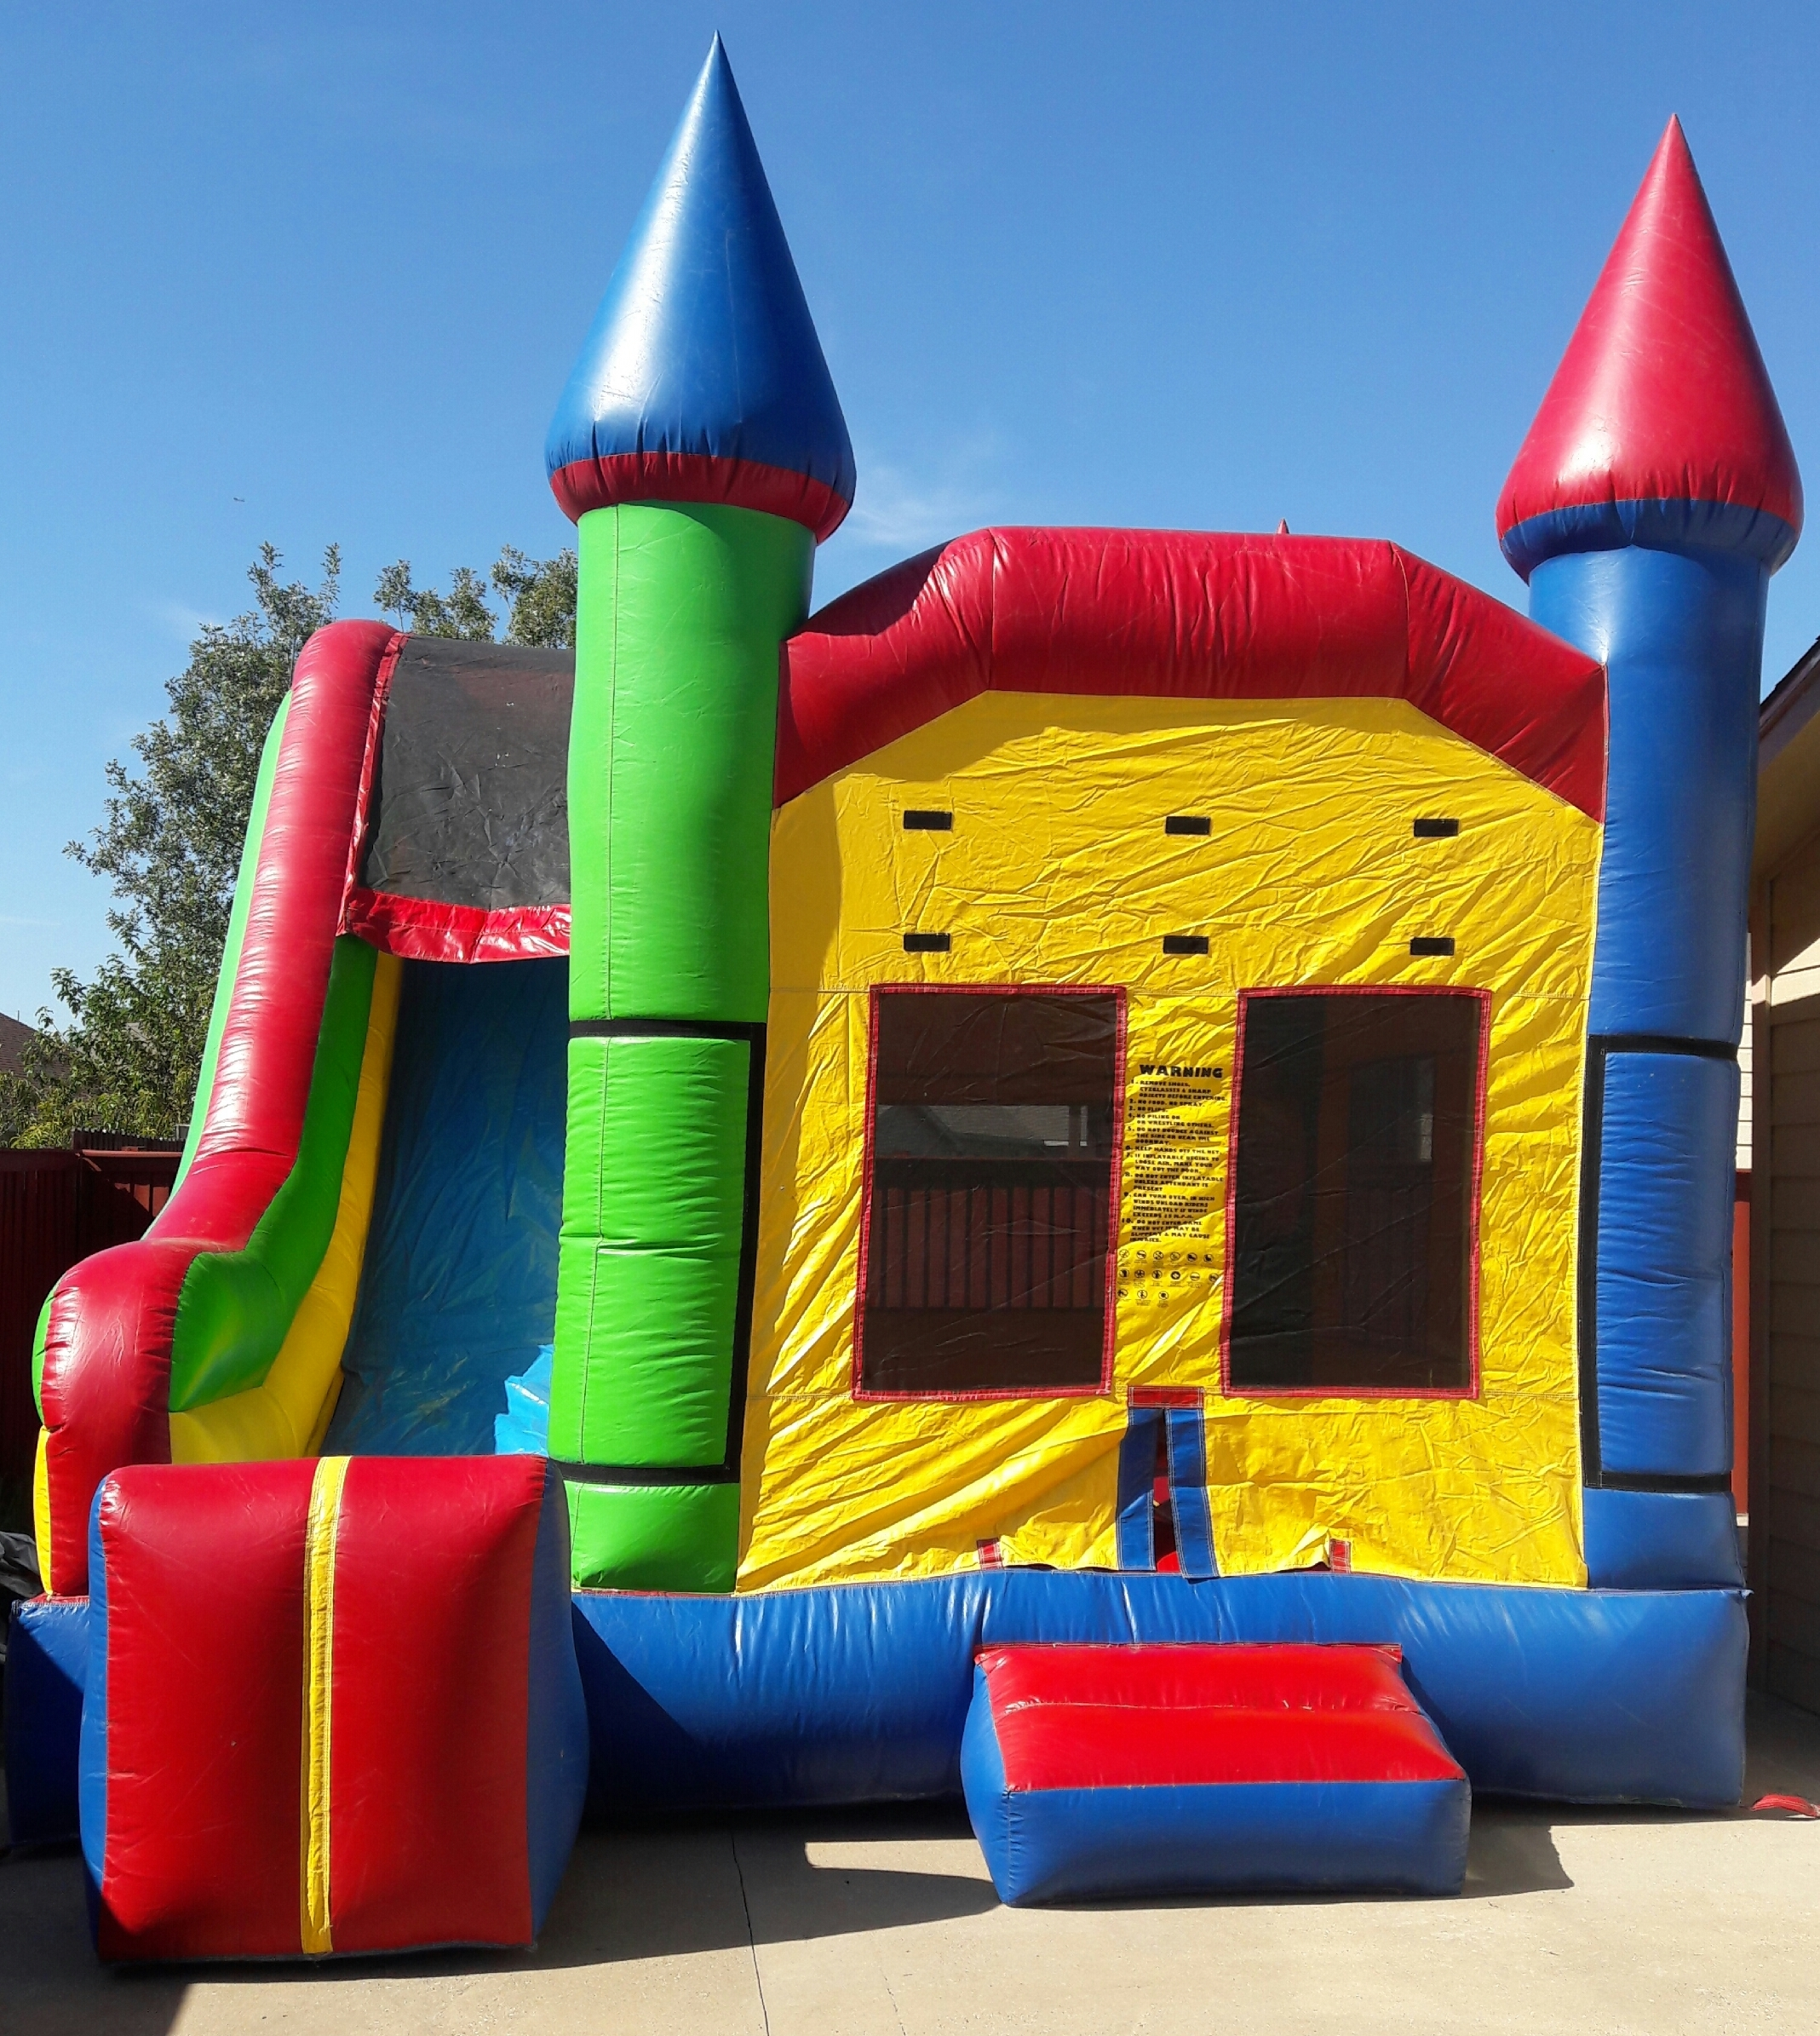 Houses For Rent Local: Lucky Bounce Houses Rentals, Dallas Texas